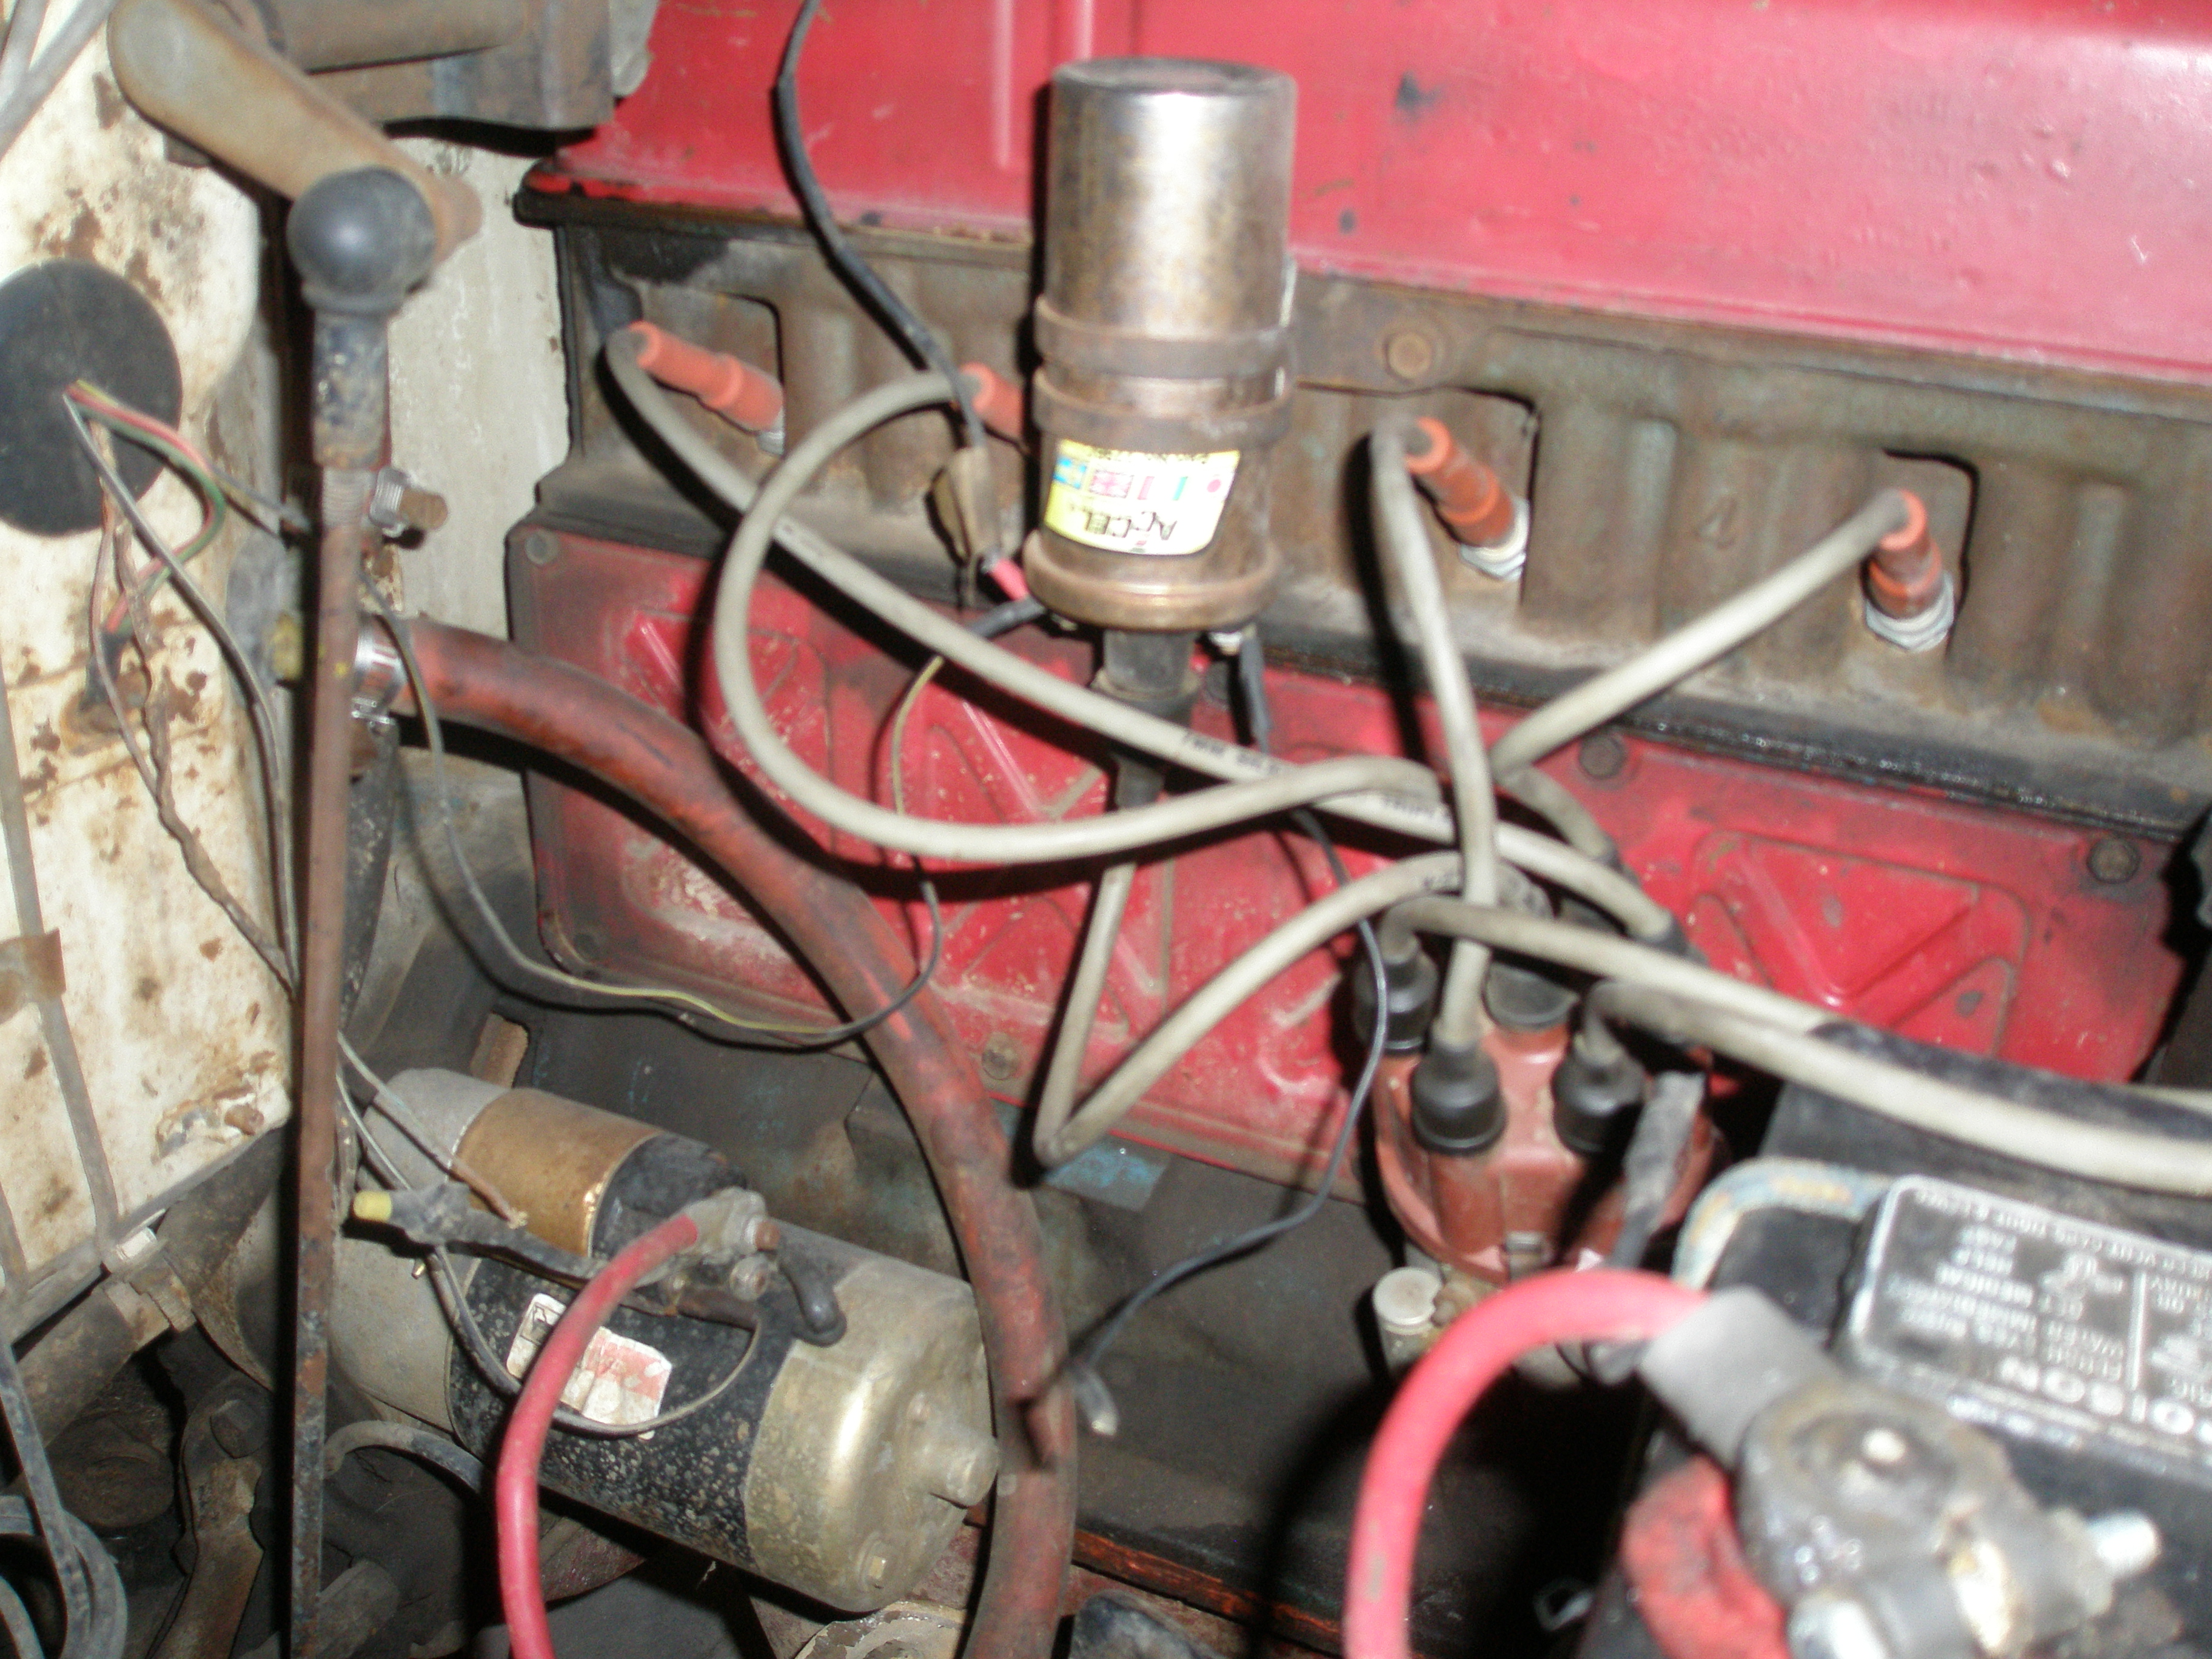 72 Toyota Land Cruiser Alternator Wiring Diagram 48 1969 Unconnected Coil Wire Fj40 Wont Start Rising Sun Member Forums 1970